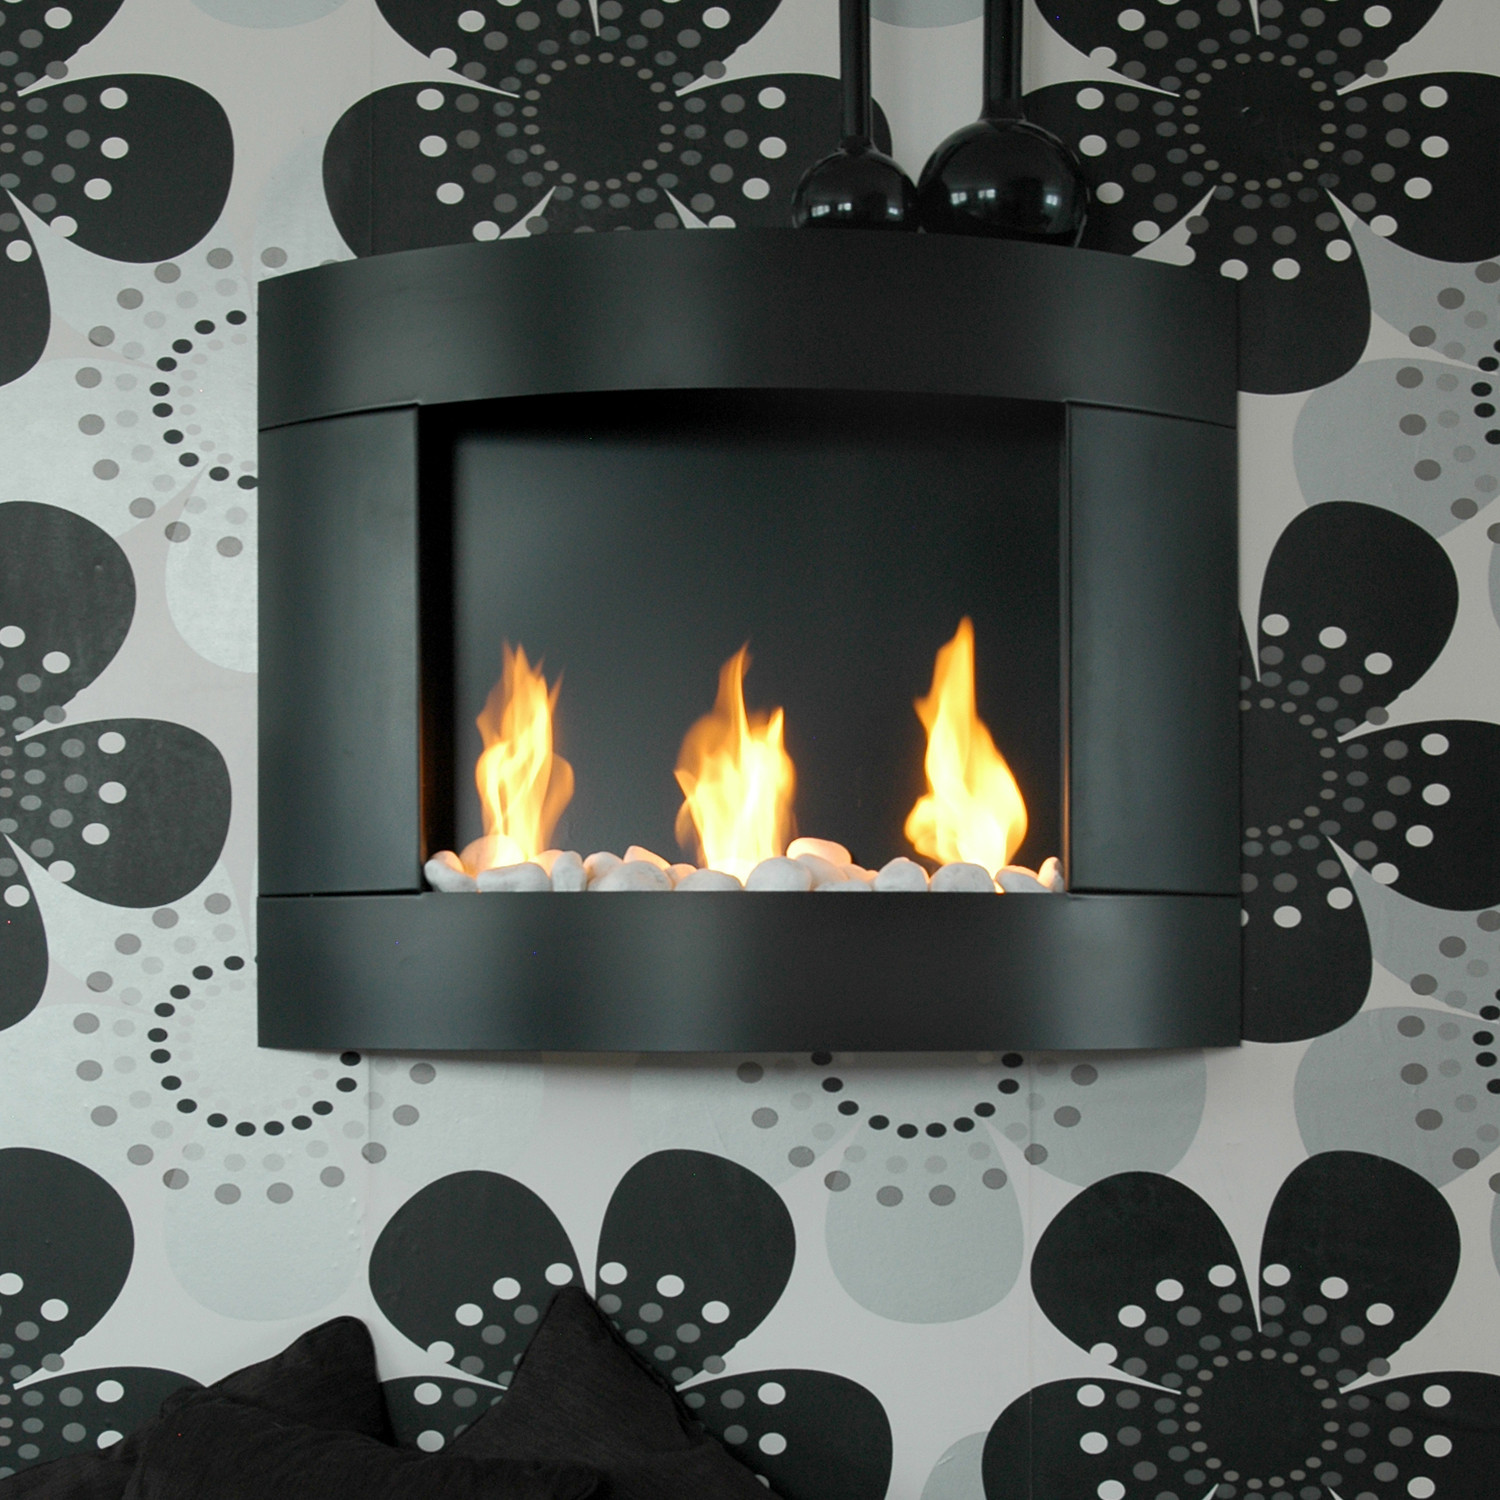 diamond 1 three round burners stainless steel bio. Black Bedroom Furniture Sets. Home Design Ideas